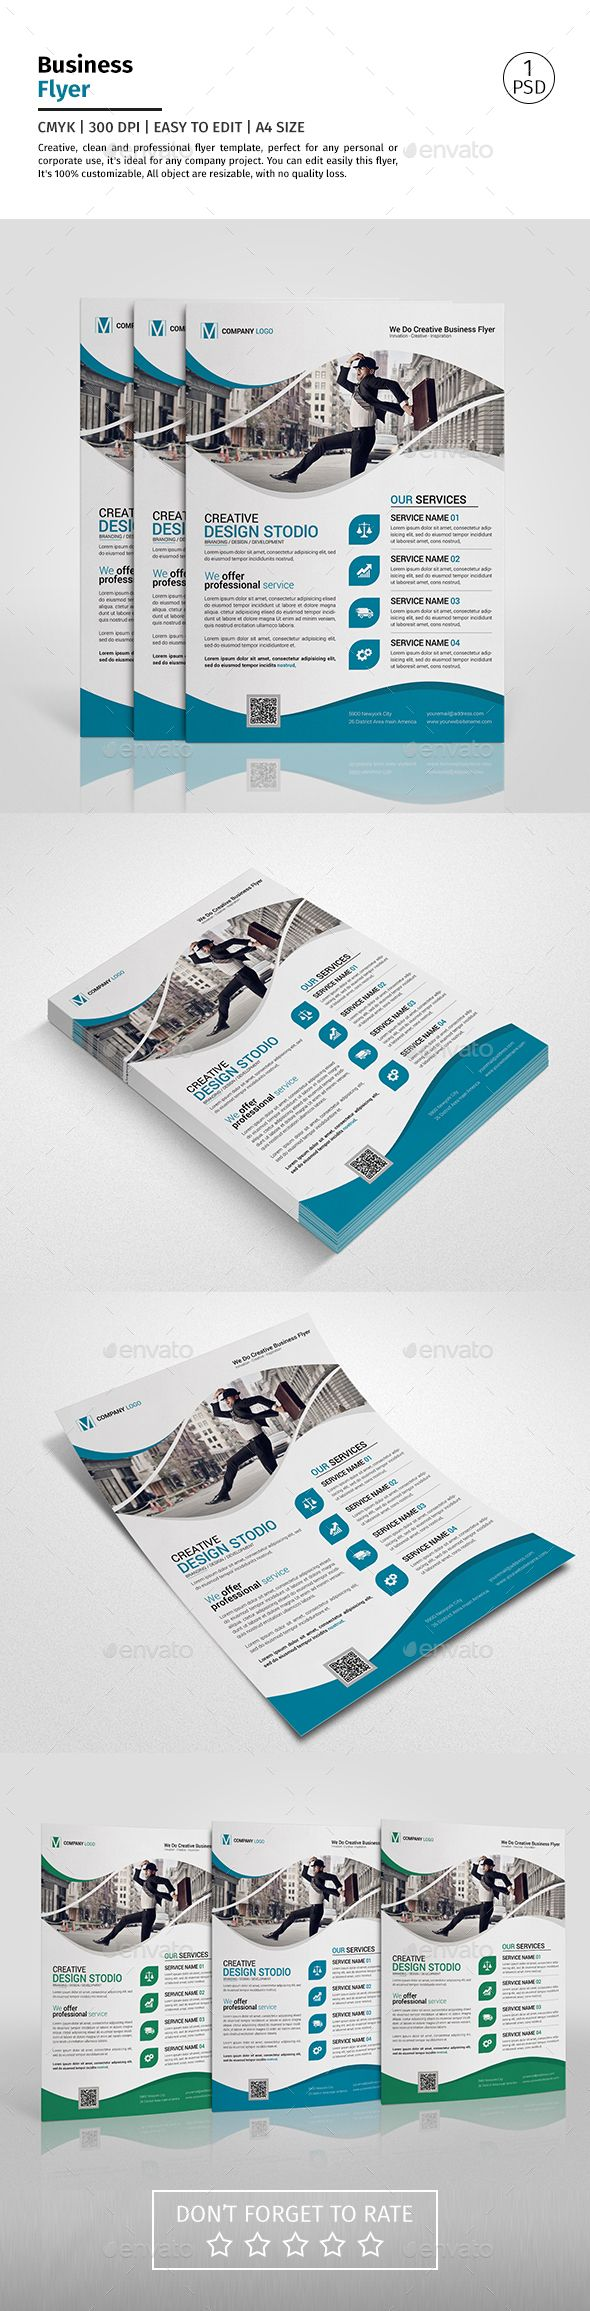 A4 Corporate Business Flyer Template PSD. Download here: http://graphicriver.net/item/a4-corporate-business-flyer-template-vol-04/14710267?ref=ksioks